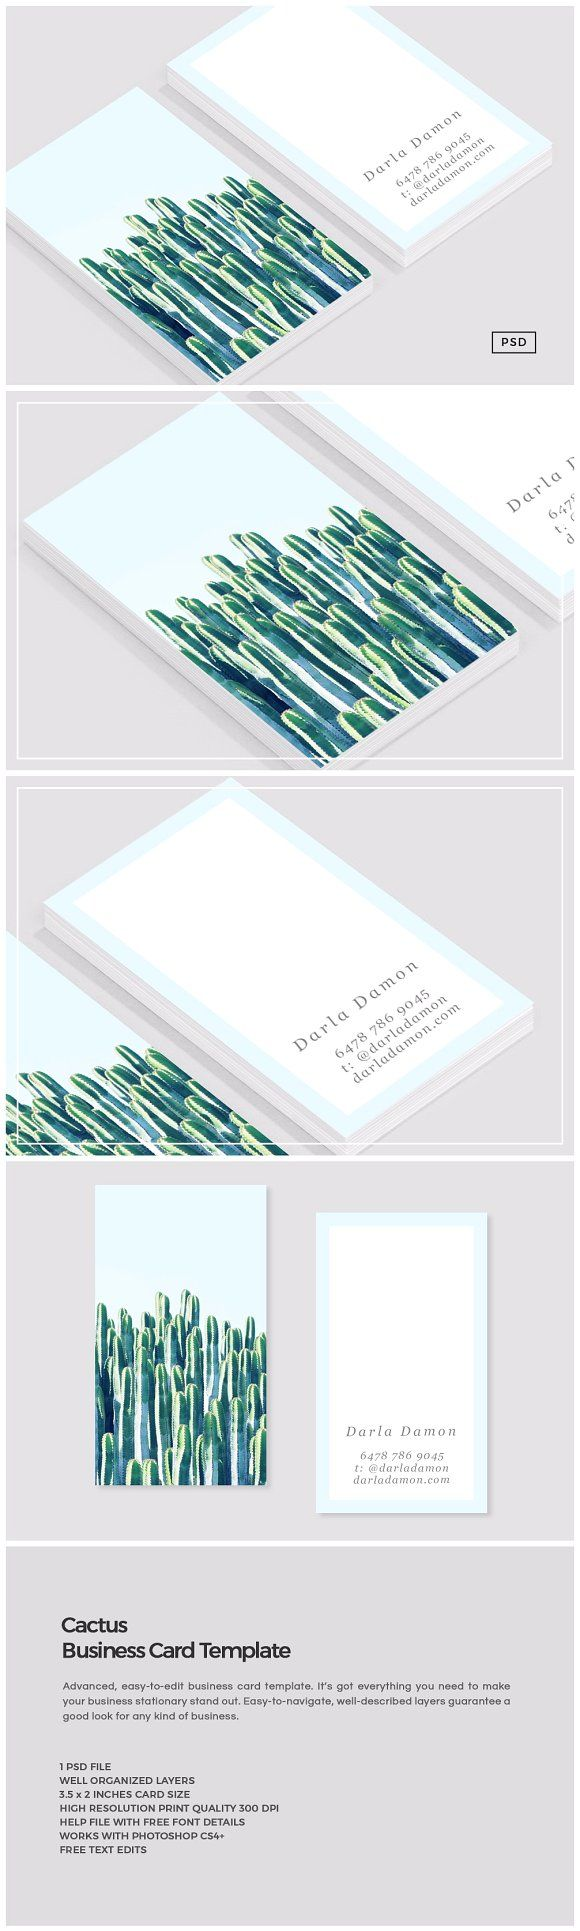 Cactus business card template card templates business cards and cacti unique business cards accmission Image collections